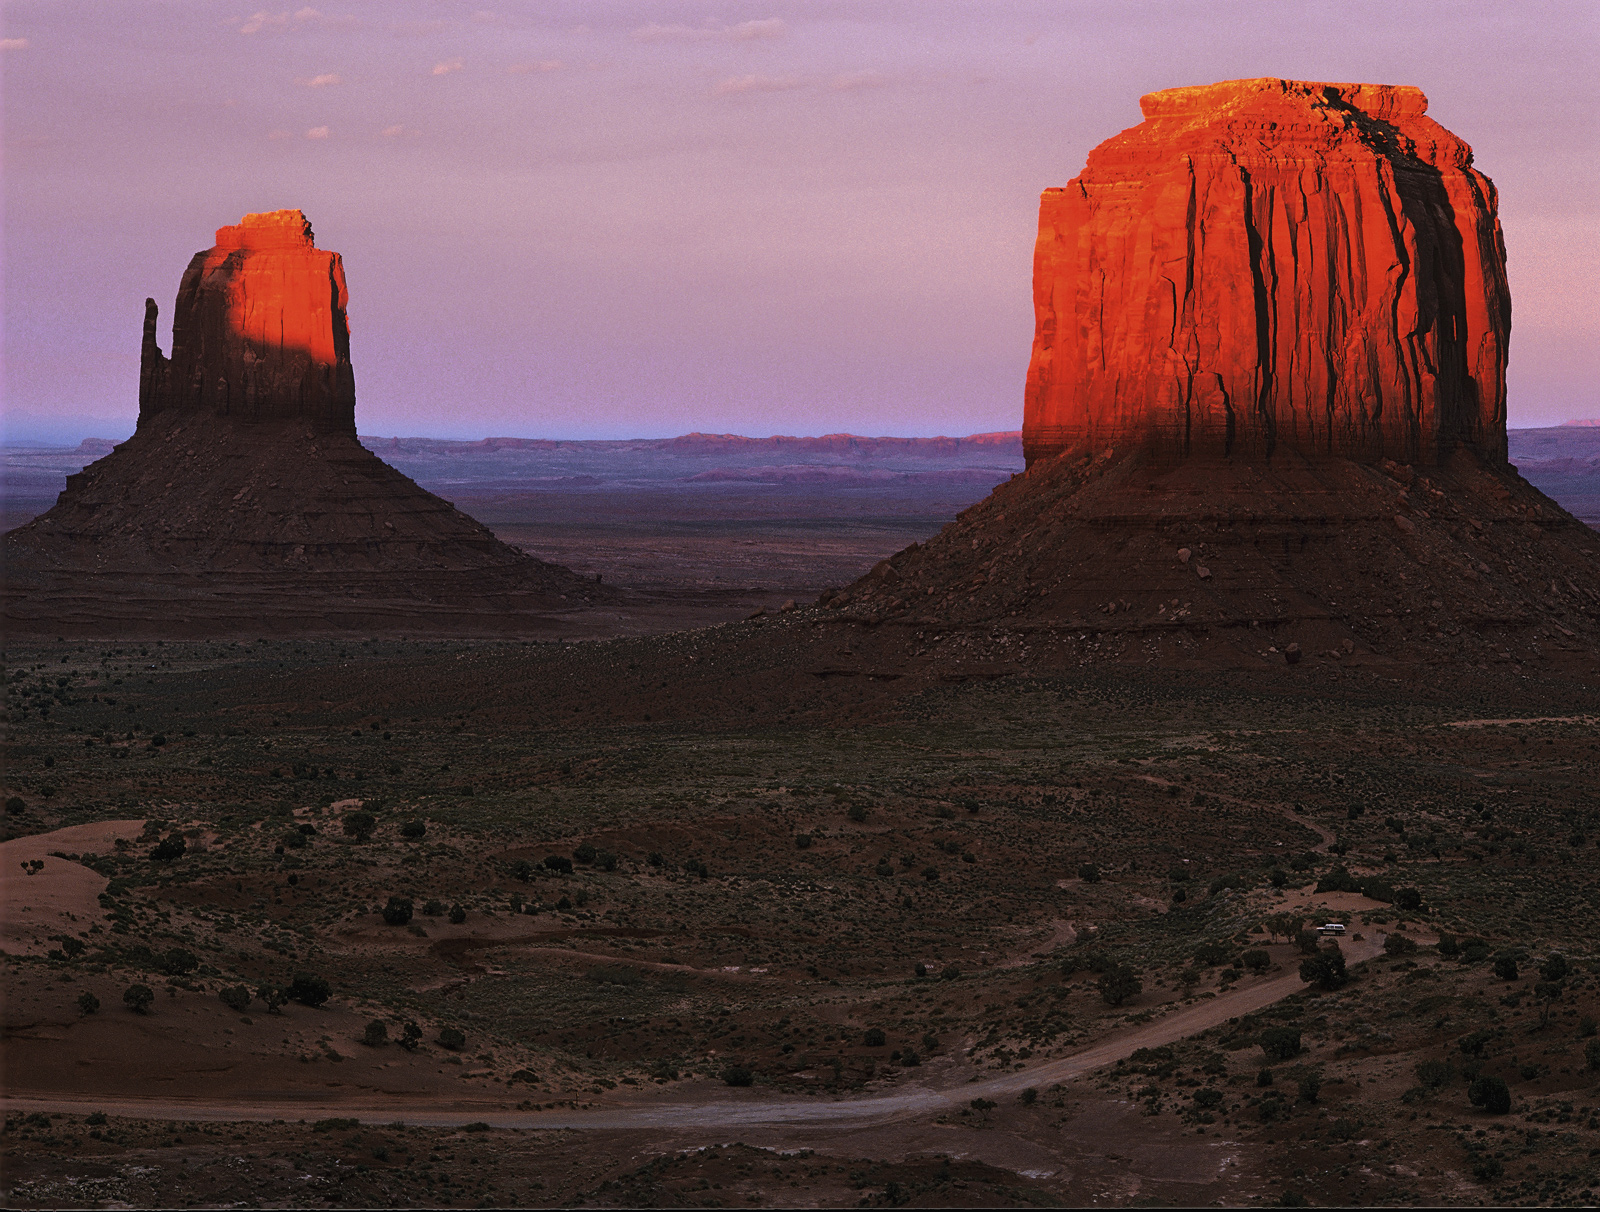 The two buttes turned scarlet courtesy of a letterbox thin gap on the horizon through which the setting sun obligingly passed...